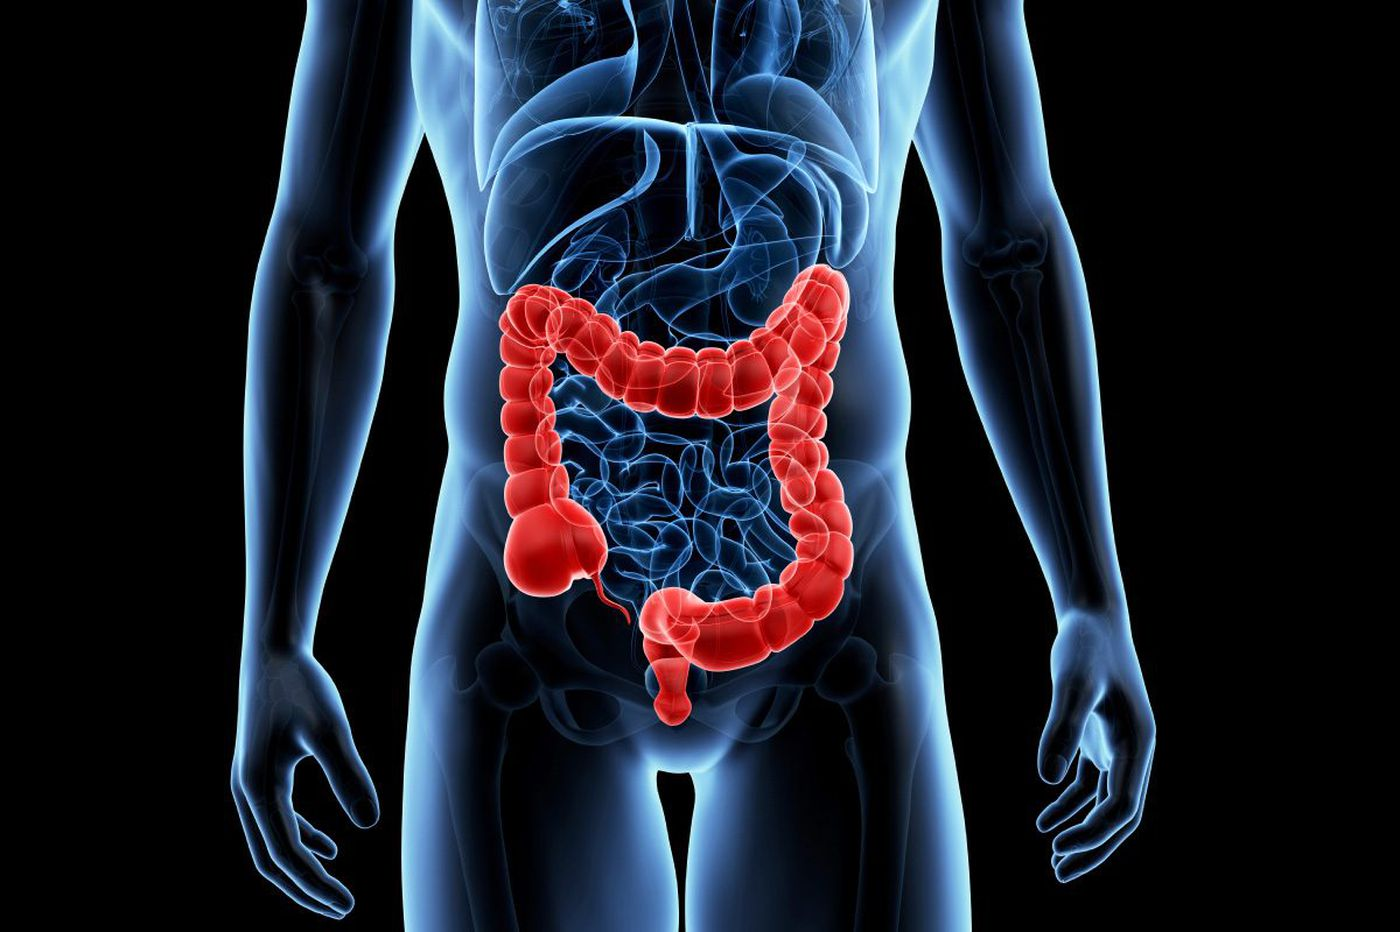 How much does a colonoscopy cost?